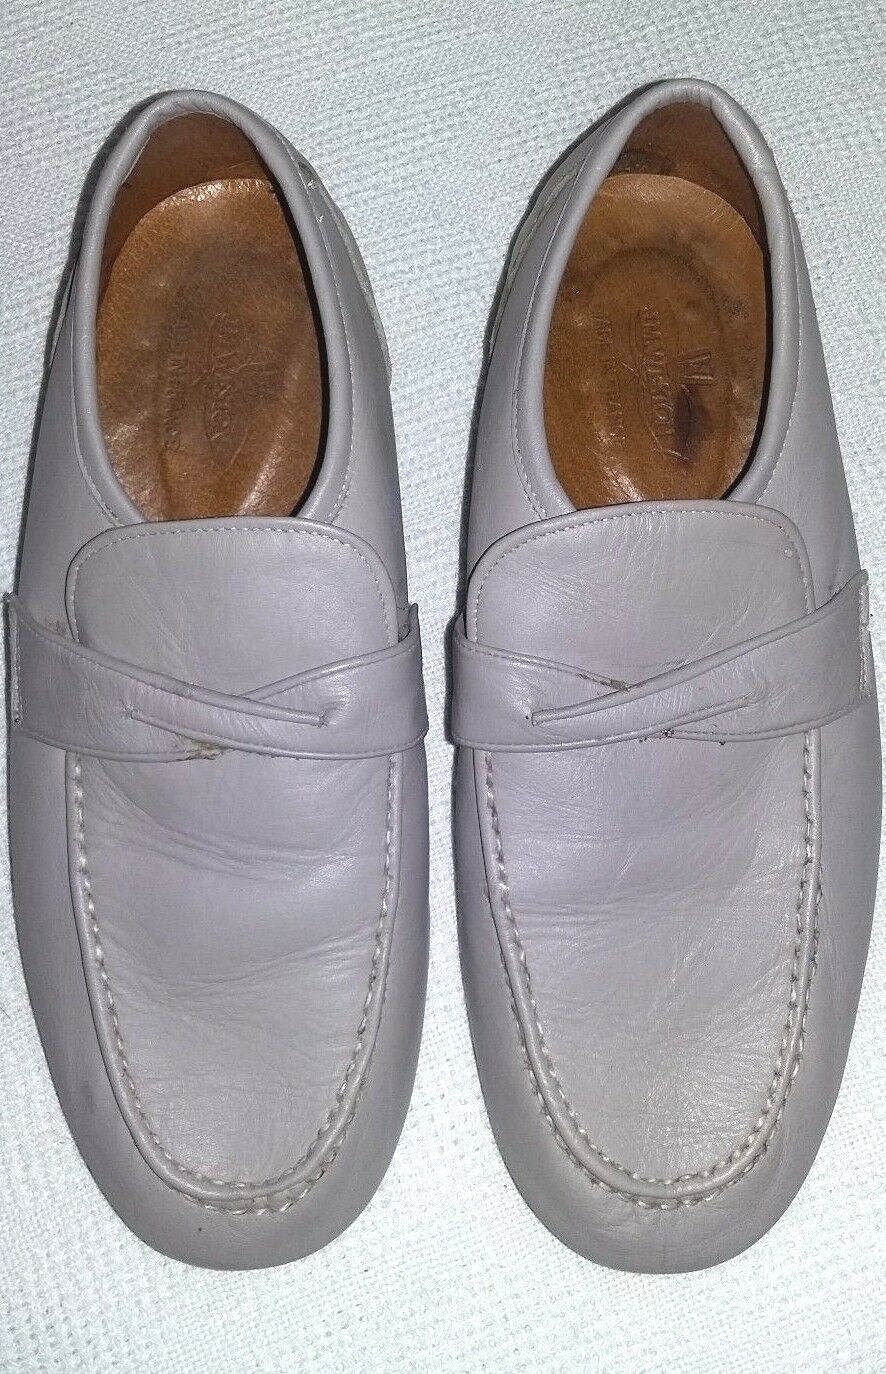 J M Weston Mens Leather Loafers size 9M